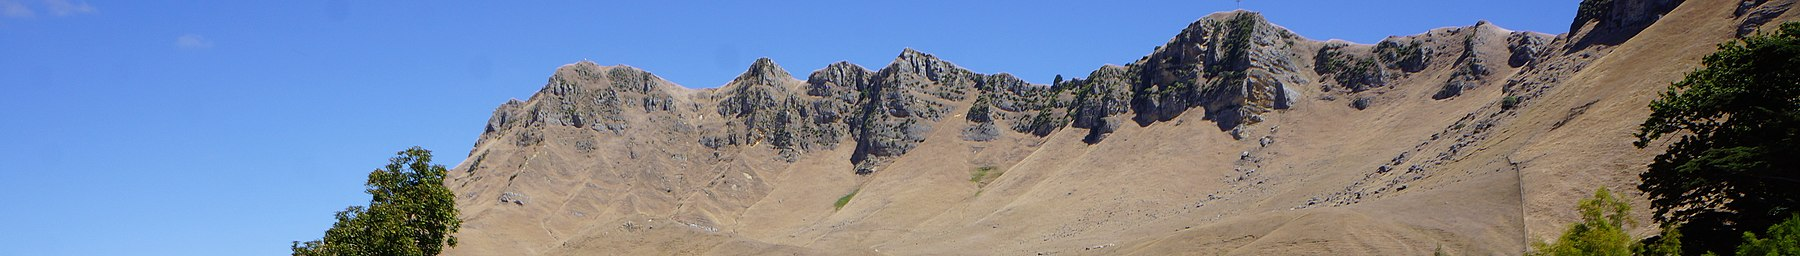 Te Mata Peak from Craggy Range Vineyard.JPG